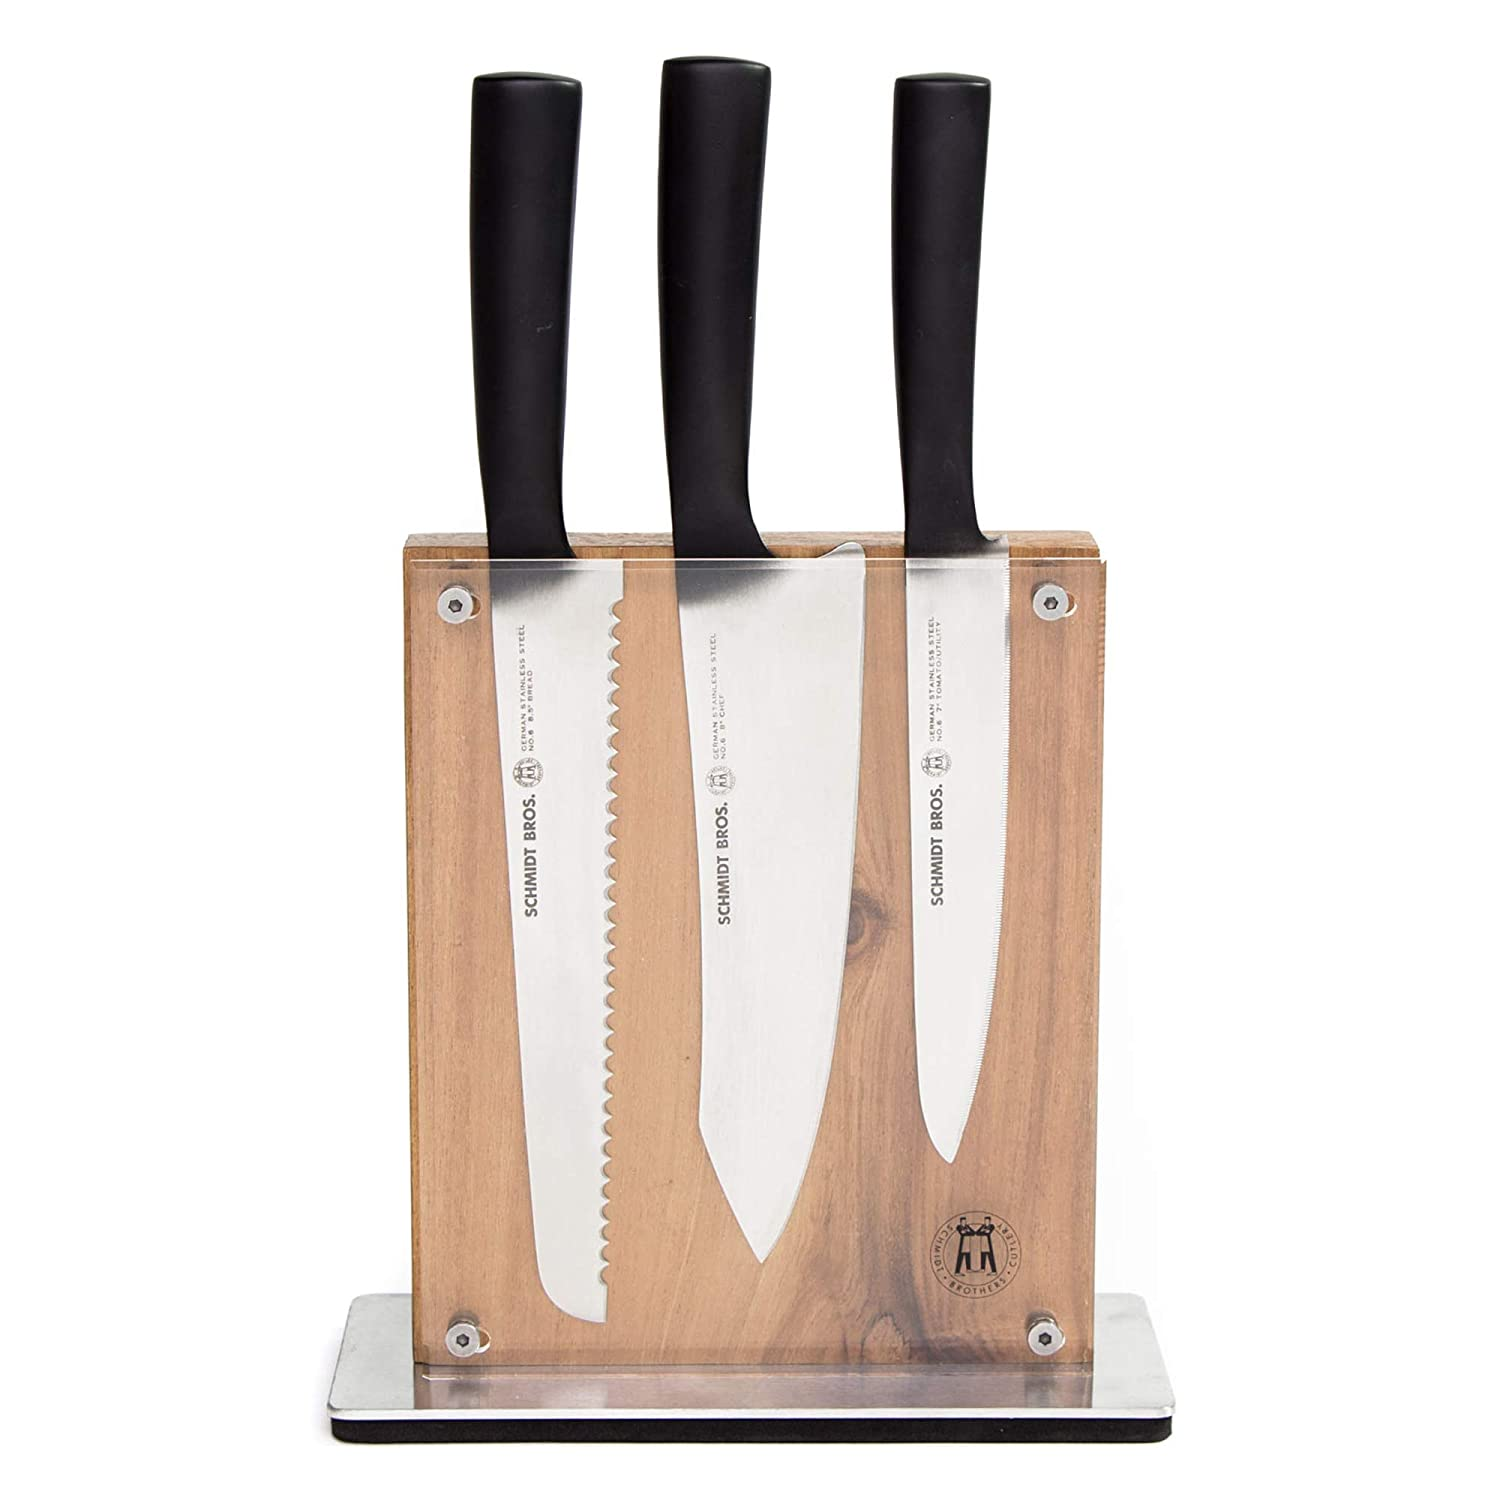 Schmidt Brothers - Carbon 6, 7-Piece Knife Set, High-Carbon Stainless Steel Cutlery with Midtown Acacia and Acrylic Magnetic Knife Block